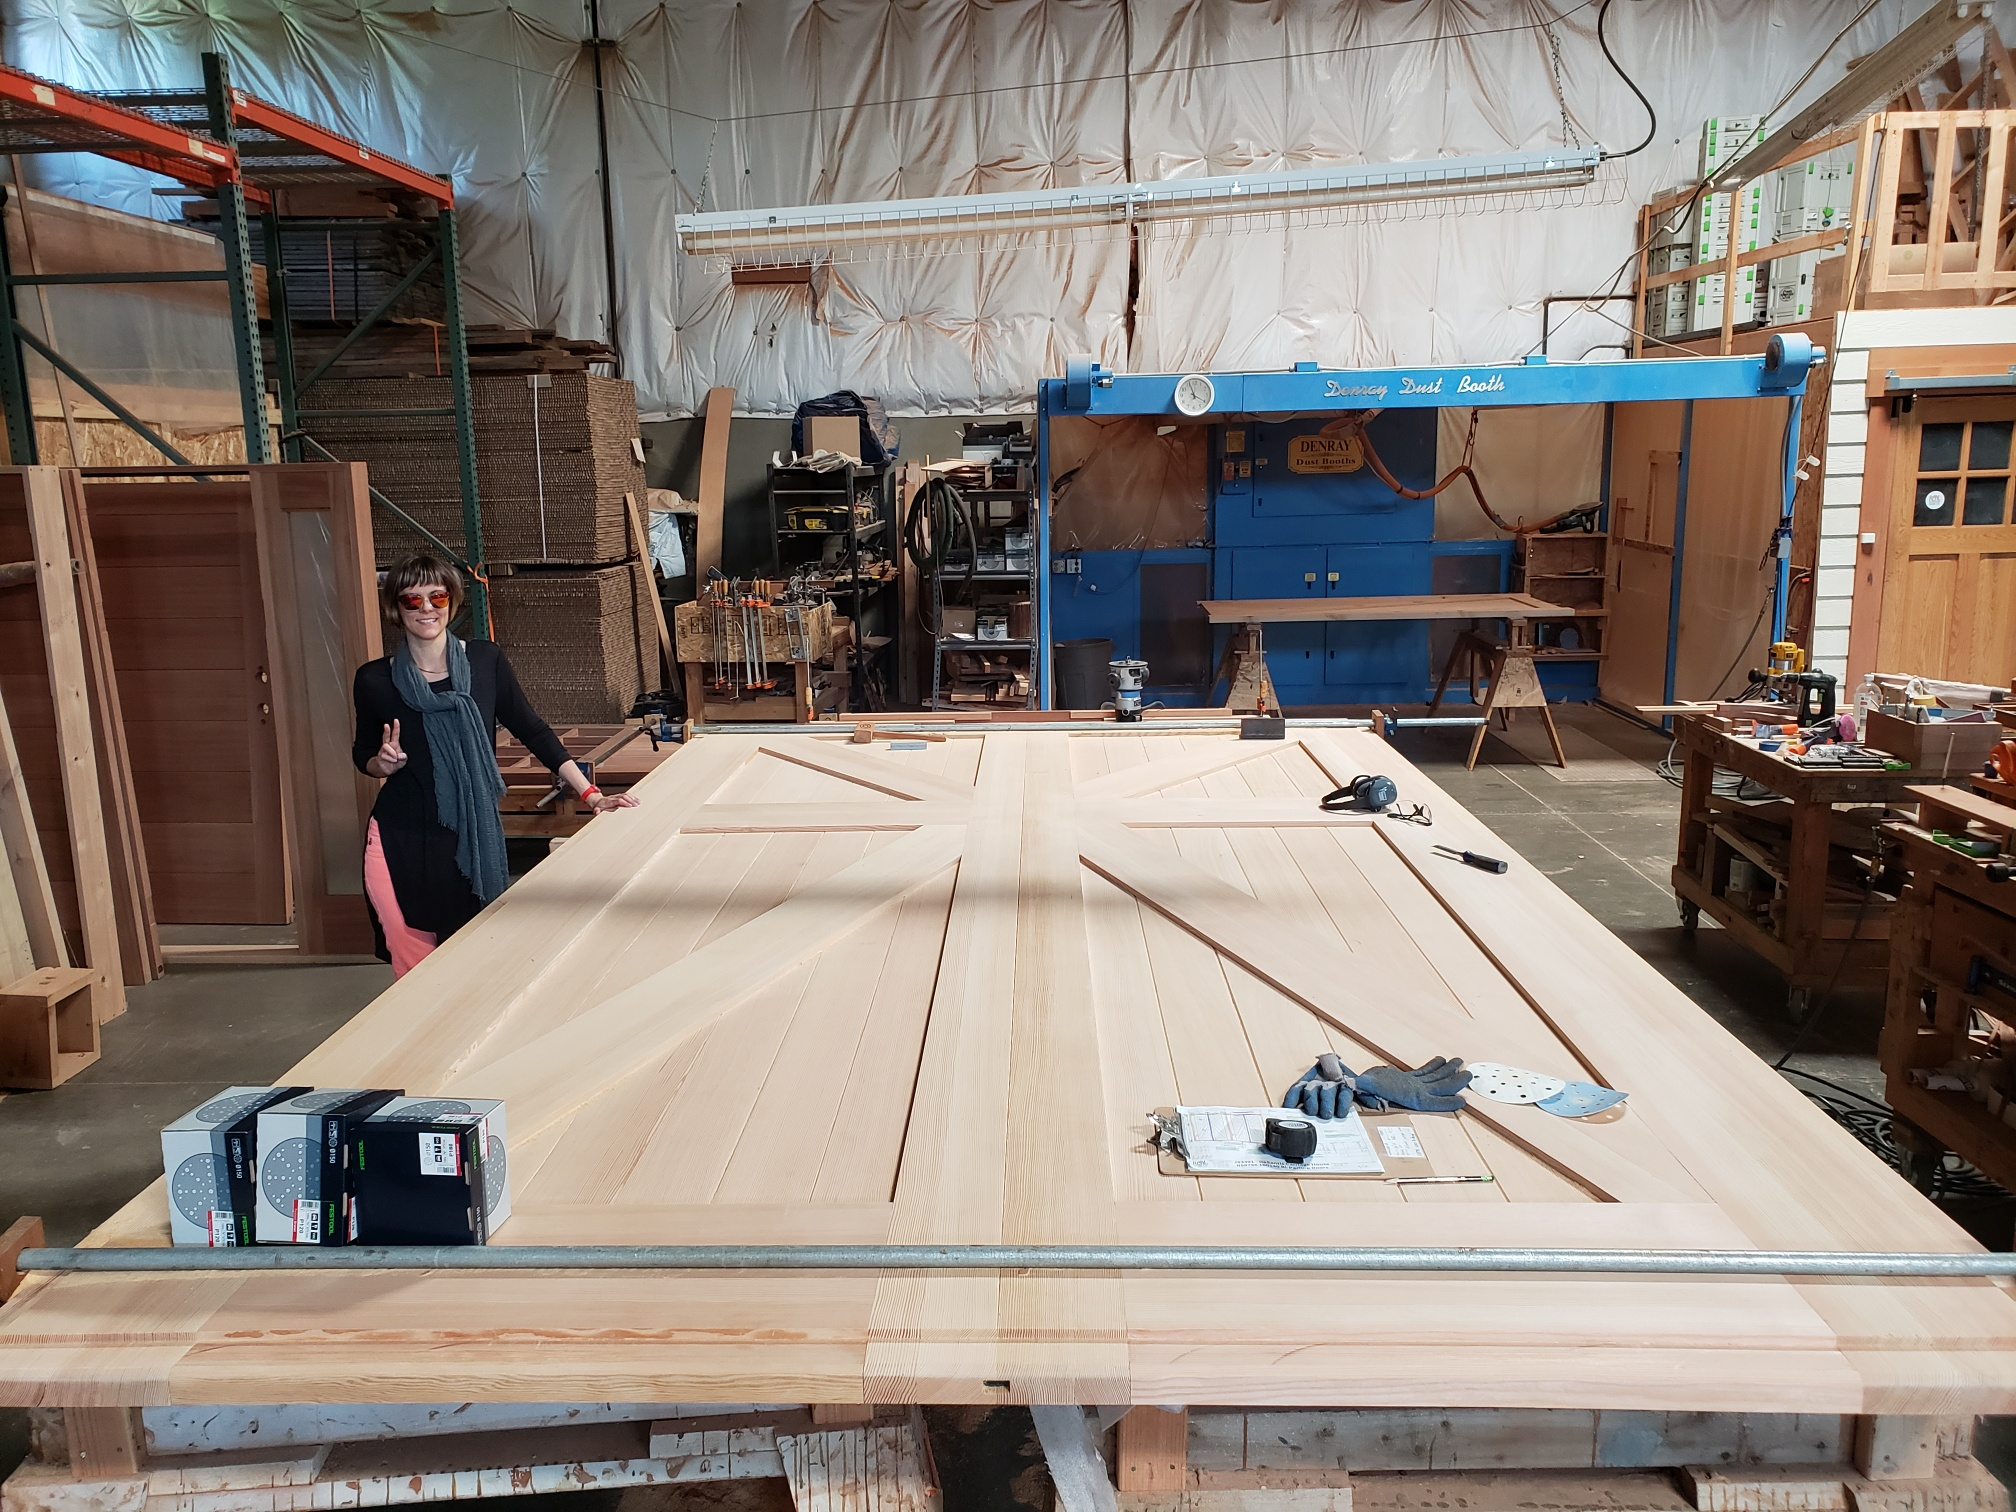 18. A large carriage door being built